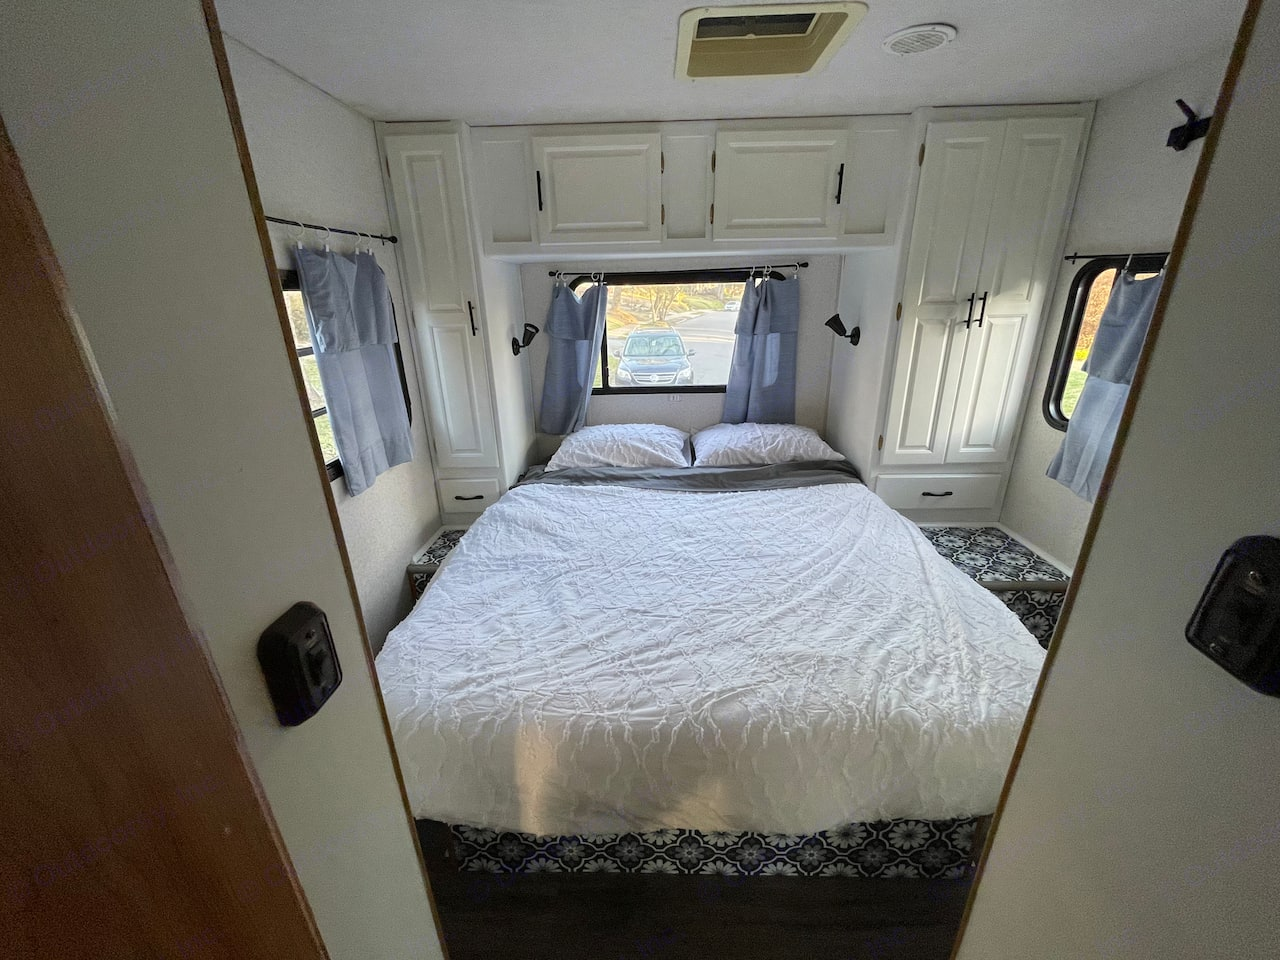 The large bedroom at the back of the RV, boasting a RV queen bed with memory foam mattress and tons of storage.. Coachmen Santara 2001